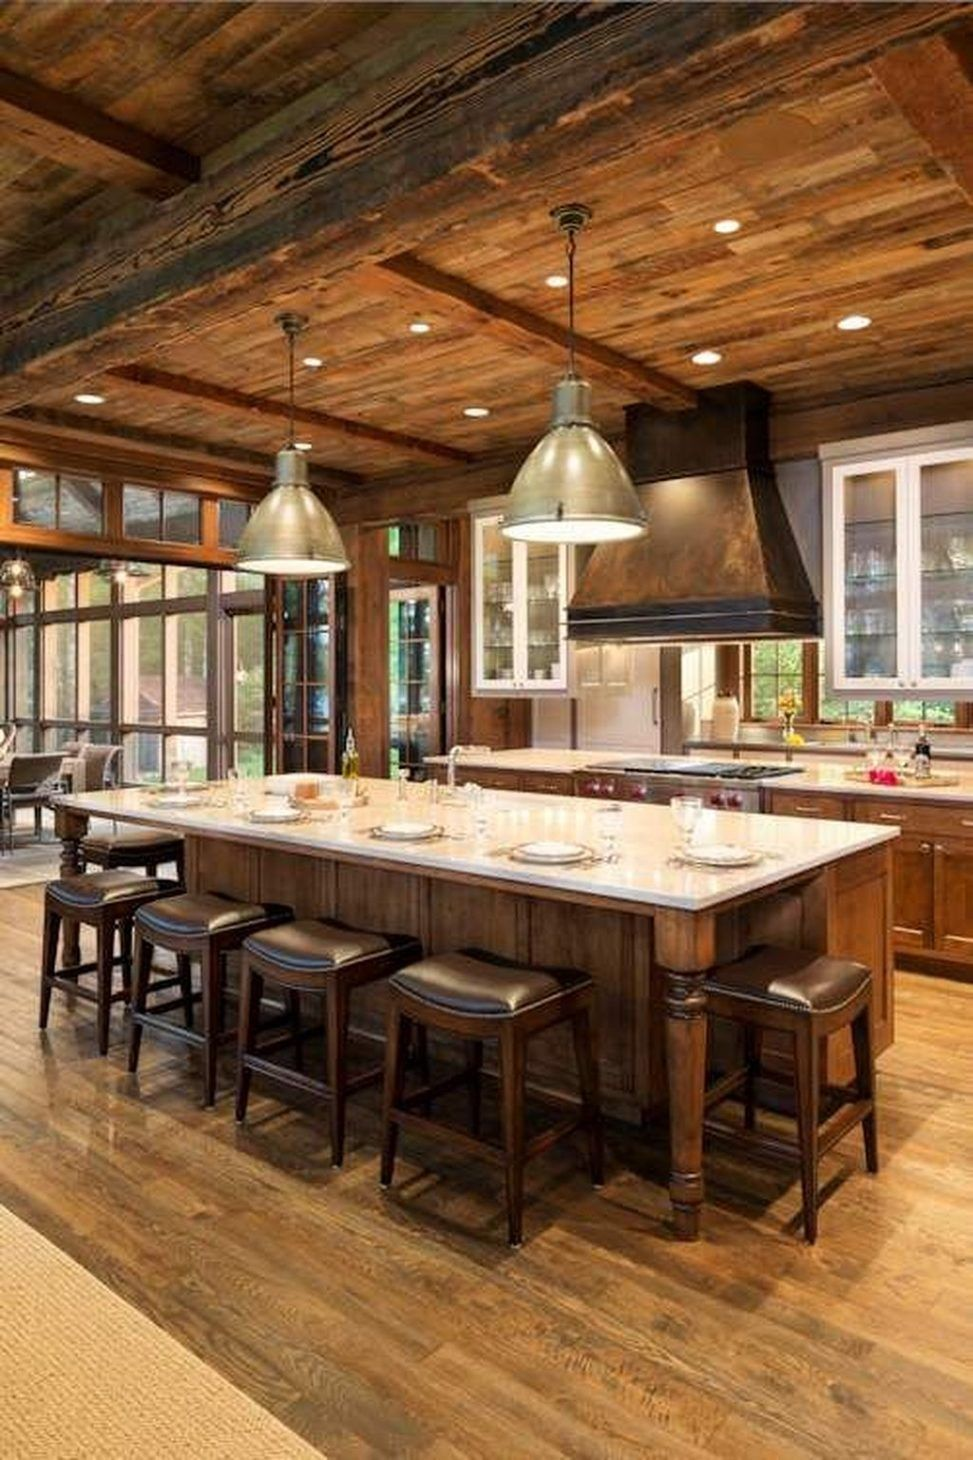 amazing rustic lake house decorating ideas 20 rustic on kitchen remodeling ideas and designs lowe s id=68940